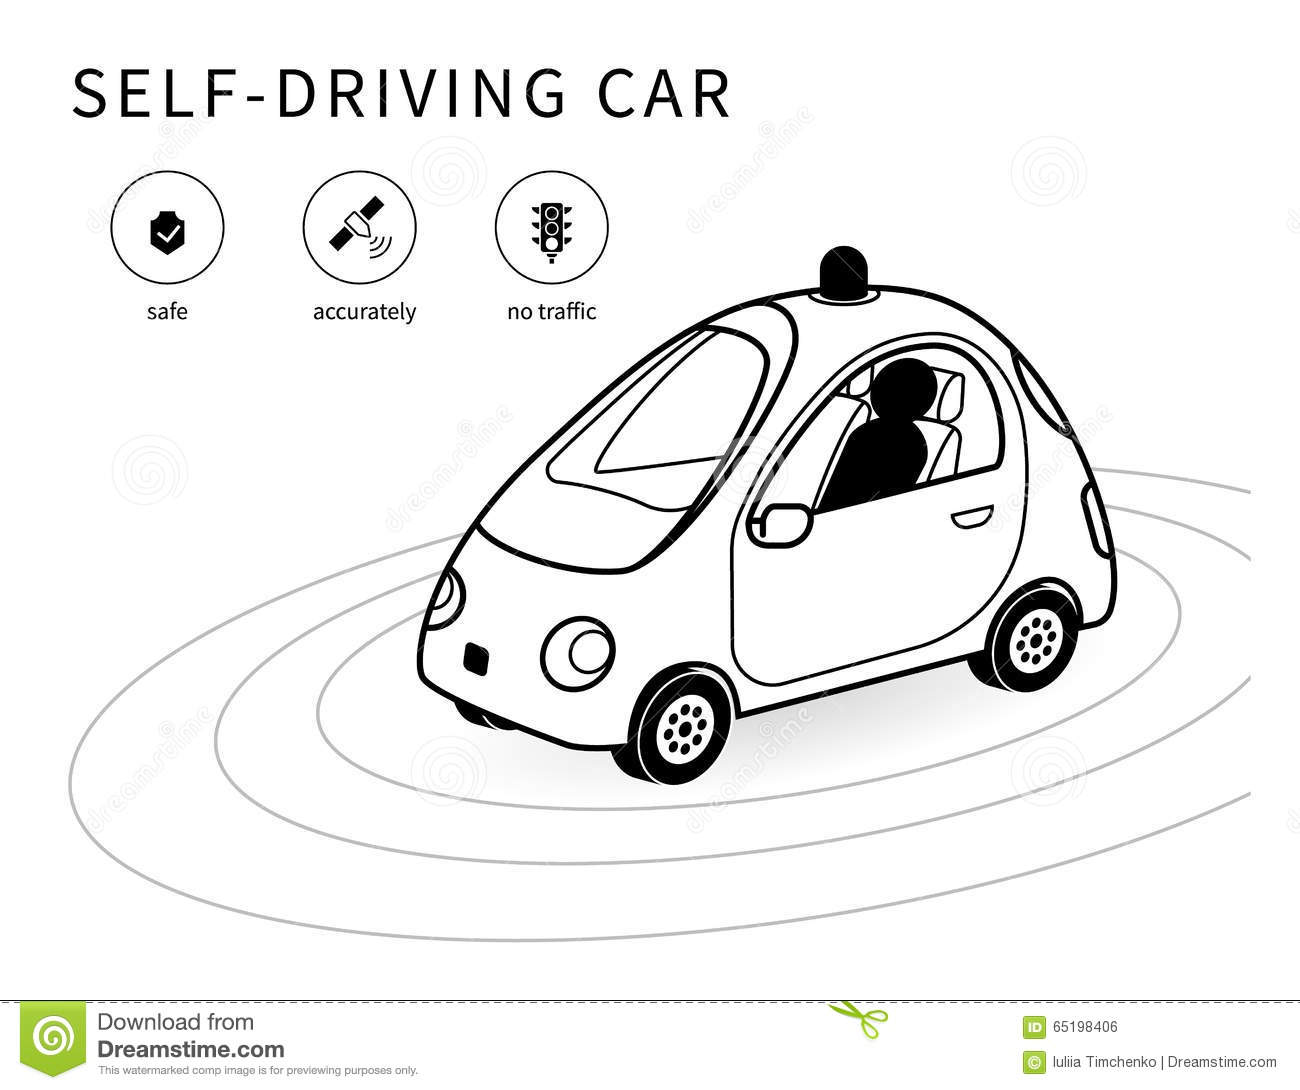 Self-driving car line icon stock vector. Illustration of